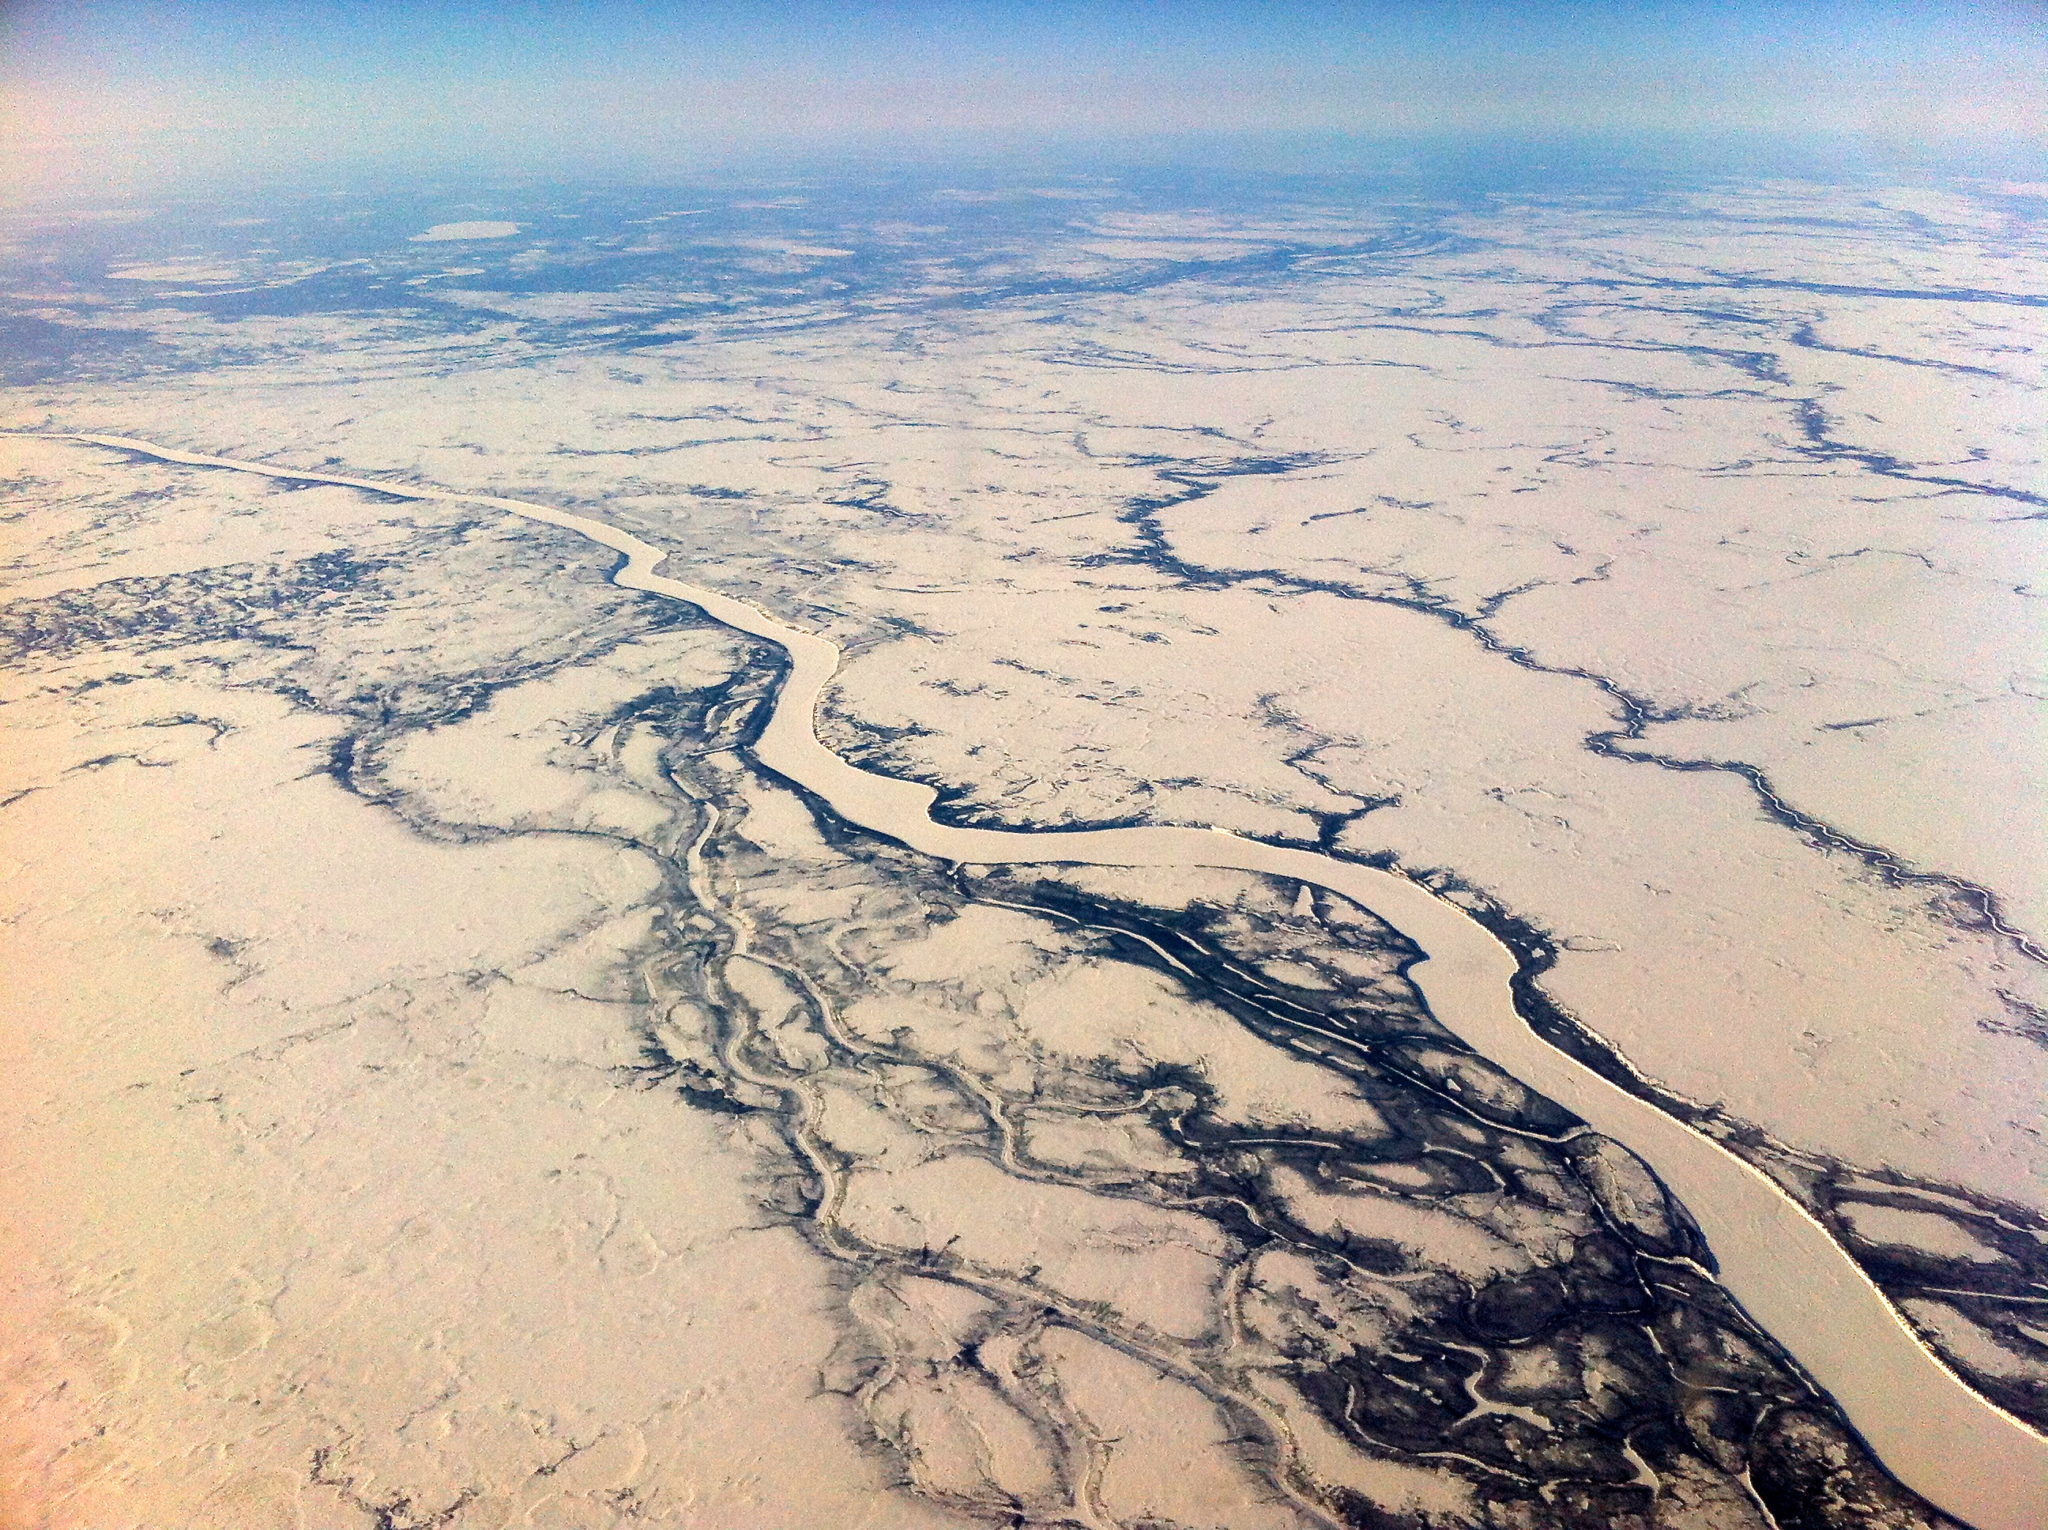 View of the Churchill River from the plane.